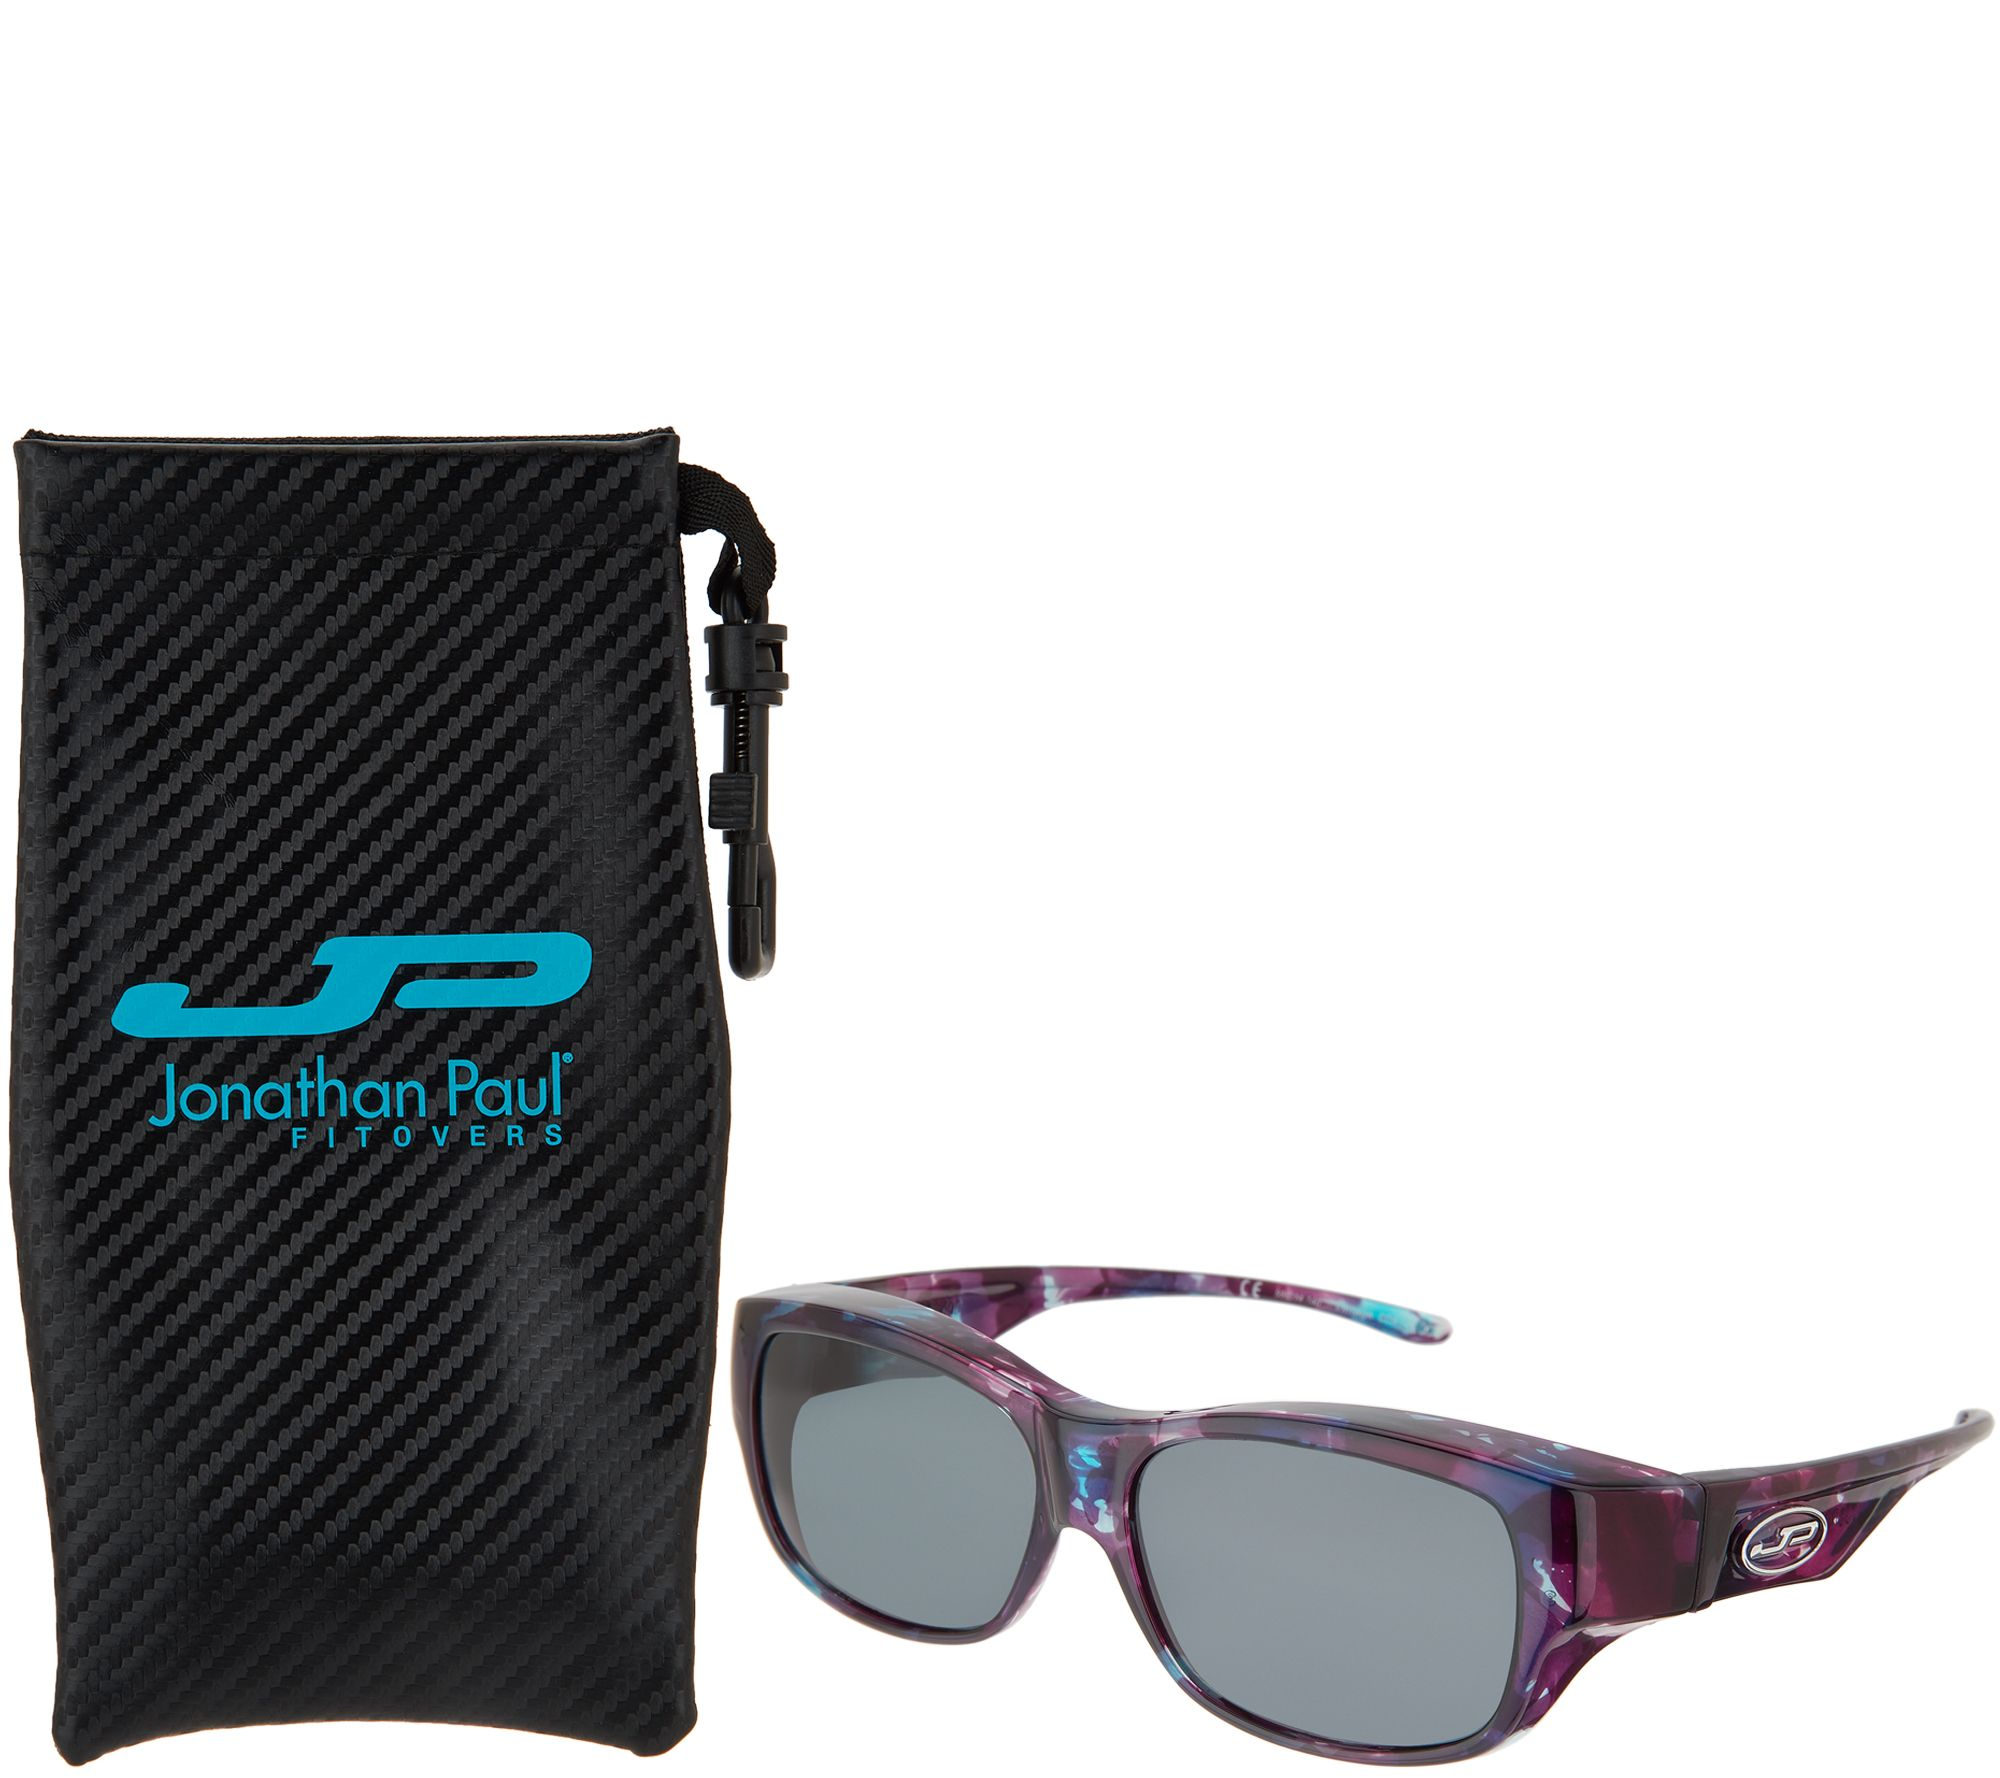 9655e868d68 Jonathan Paul Polarized Fitovers Sunglasses with AR Coating - Page 1 —  QVC.com